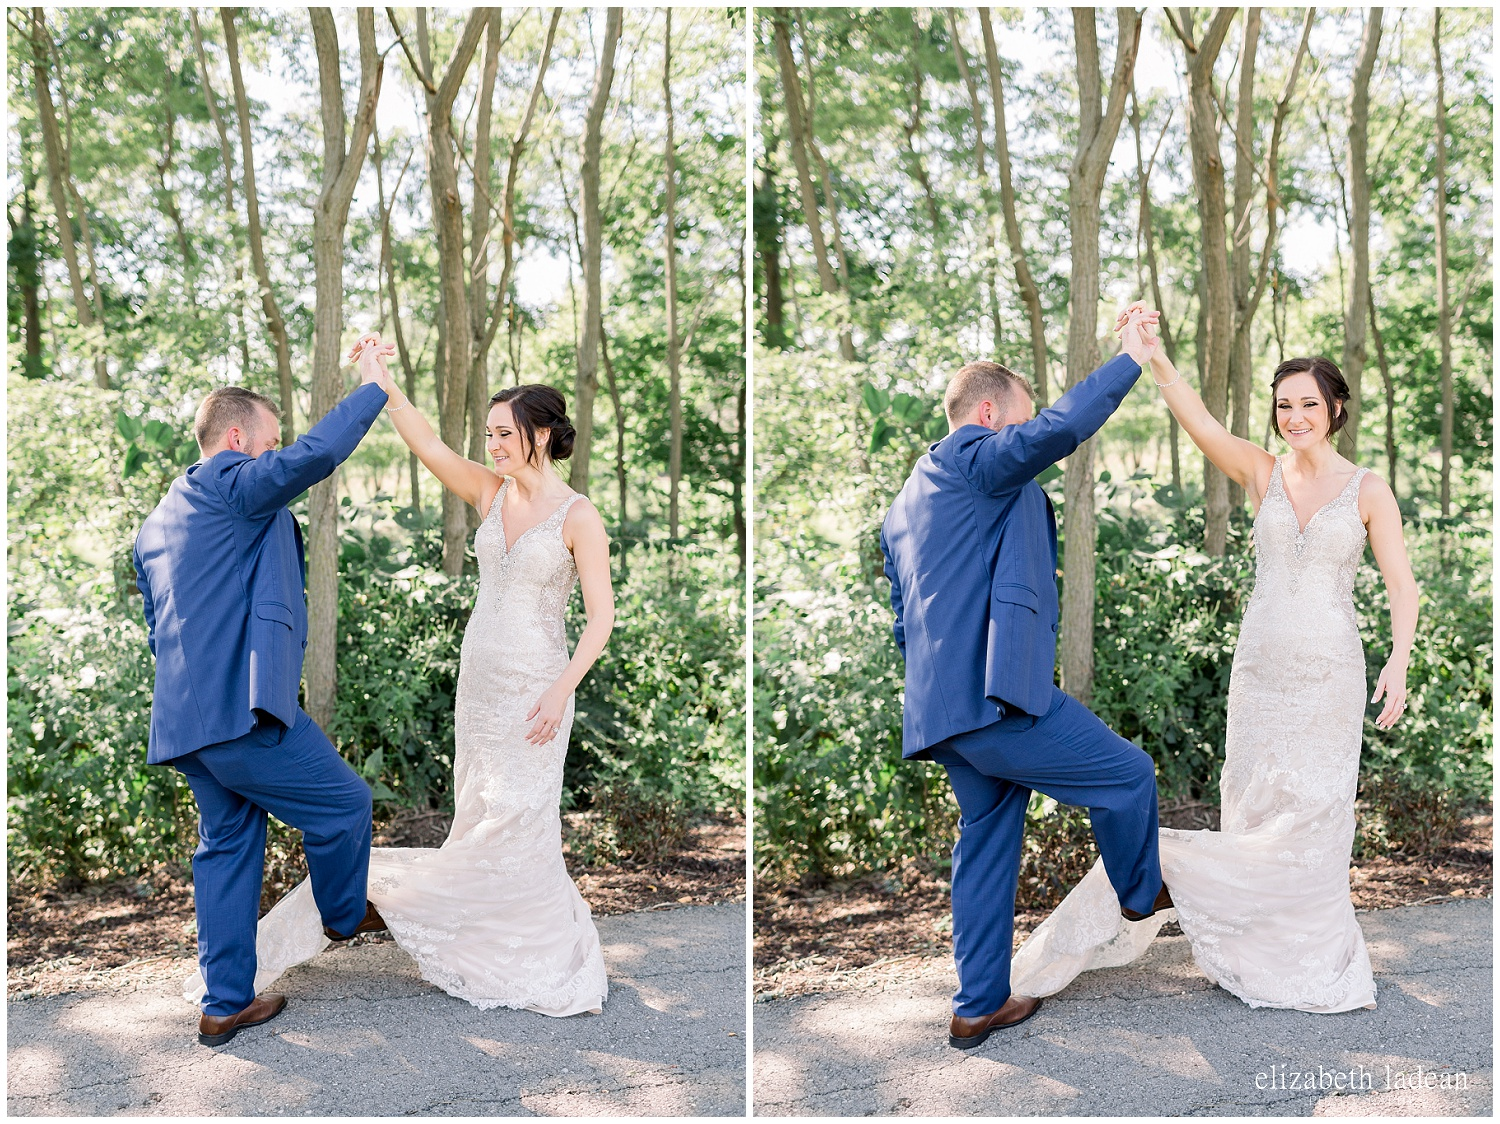 -behind-the-scenes-of-a-wedding-photographer-2018-elizabeth-ladean-photography-photo_3496.jpg